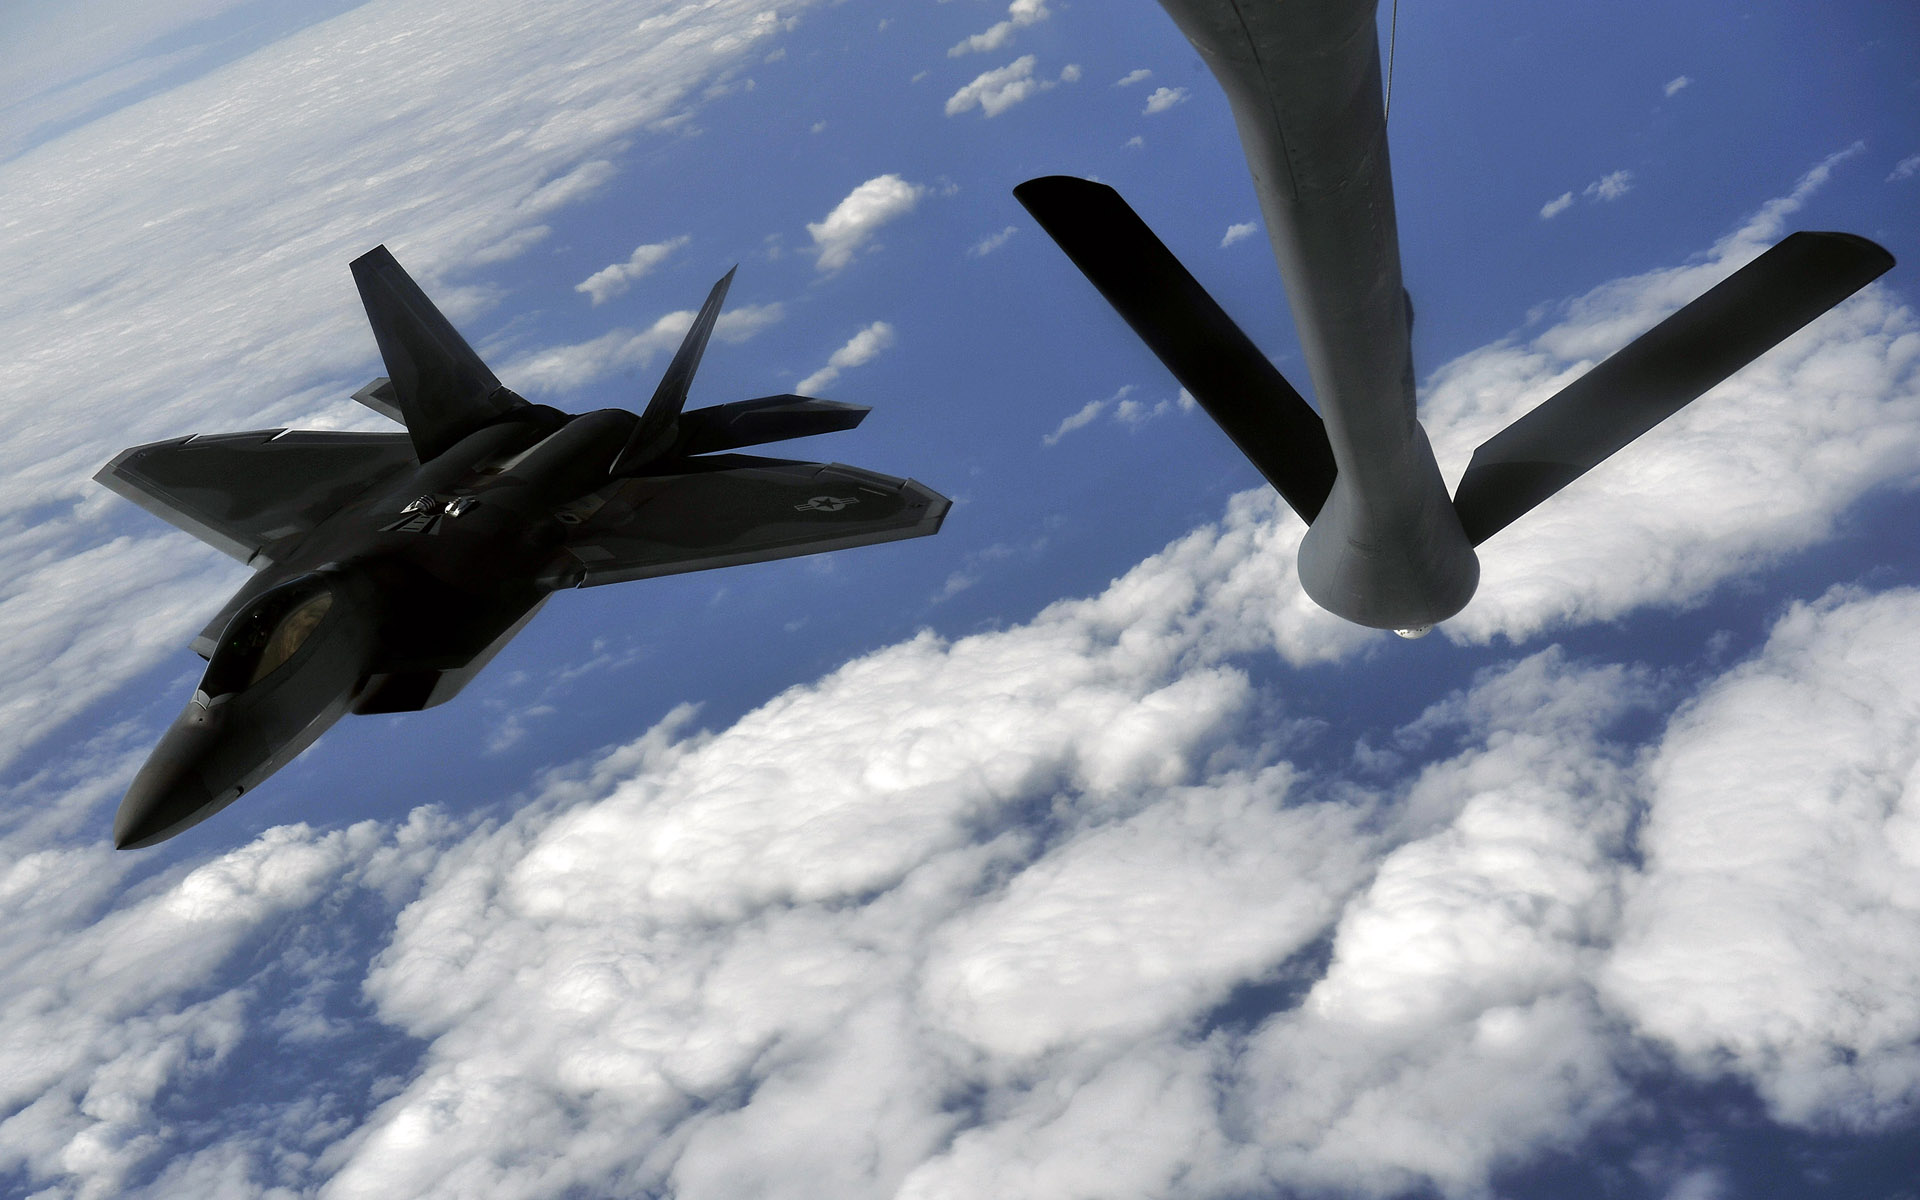 F 22 Raptor prepares to refuel